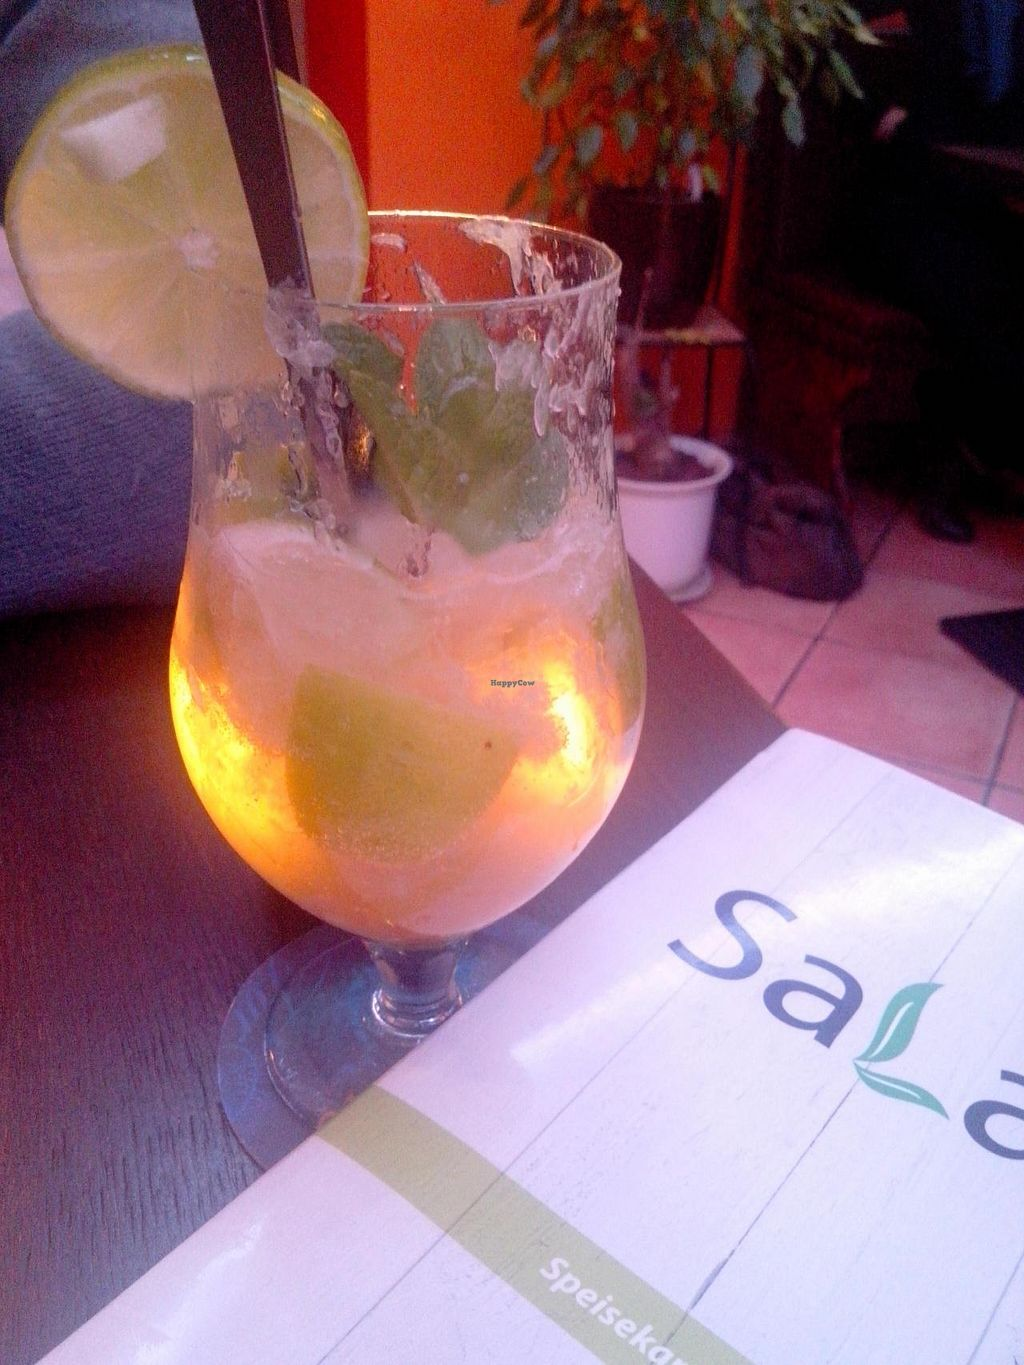 """Photo of CLOSED: Sala  by <a href=""""/members/profile/Lu73"""">Lu73</a> <br/>Alcohol-free herbal drink, fresh & tasty <br/> May 9, 2015  - <a href='/contact/abuse/image/49104/101692'>Report</a>"""